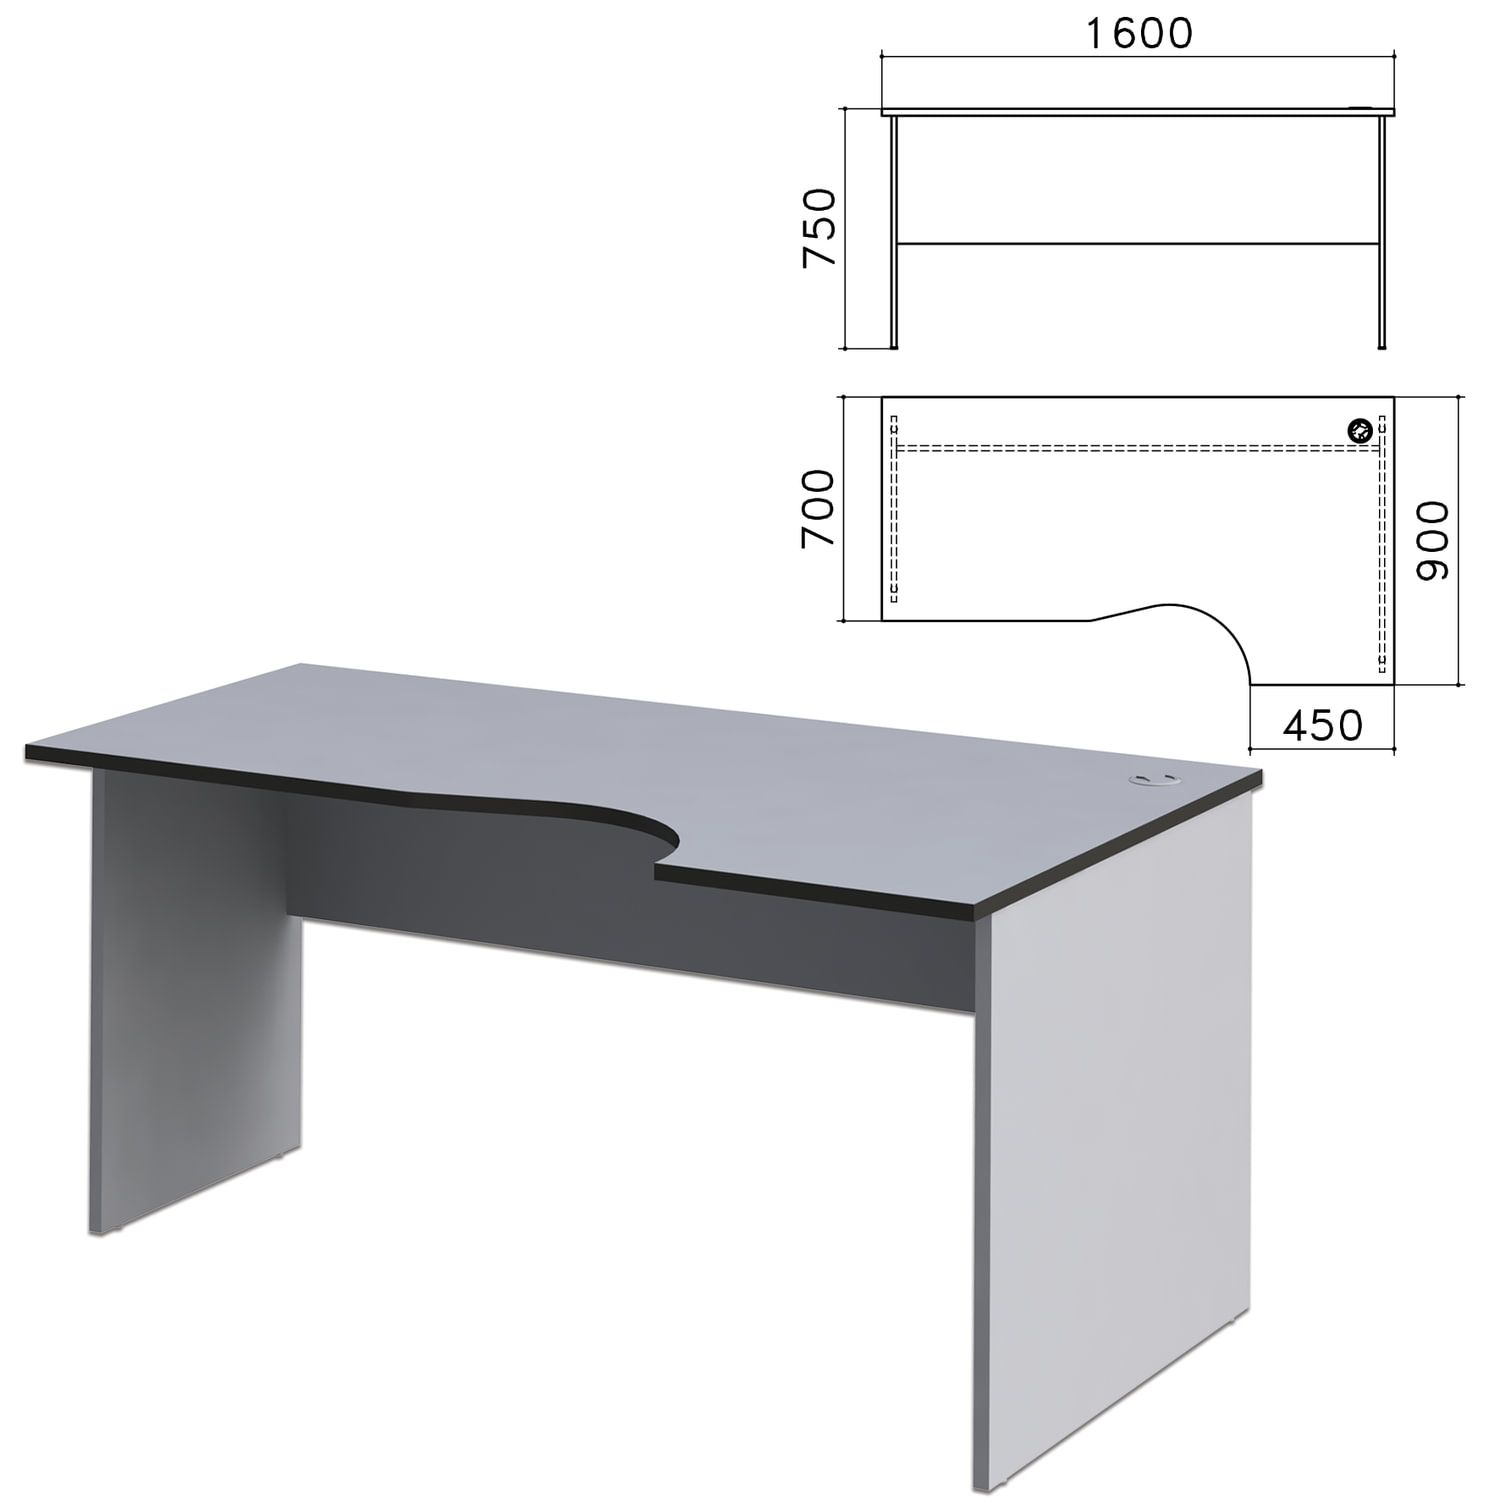 "Table written ergonomic ""Monolith,"" 1600s900s750 mm, right, gray color"